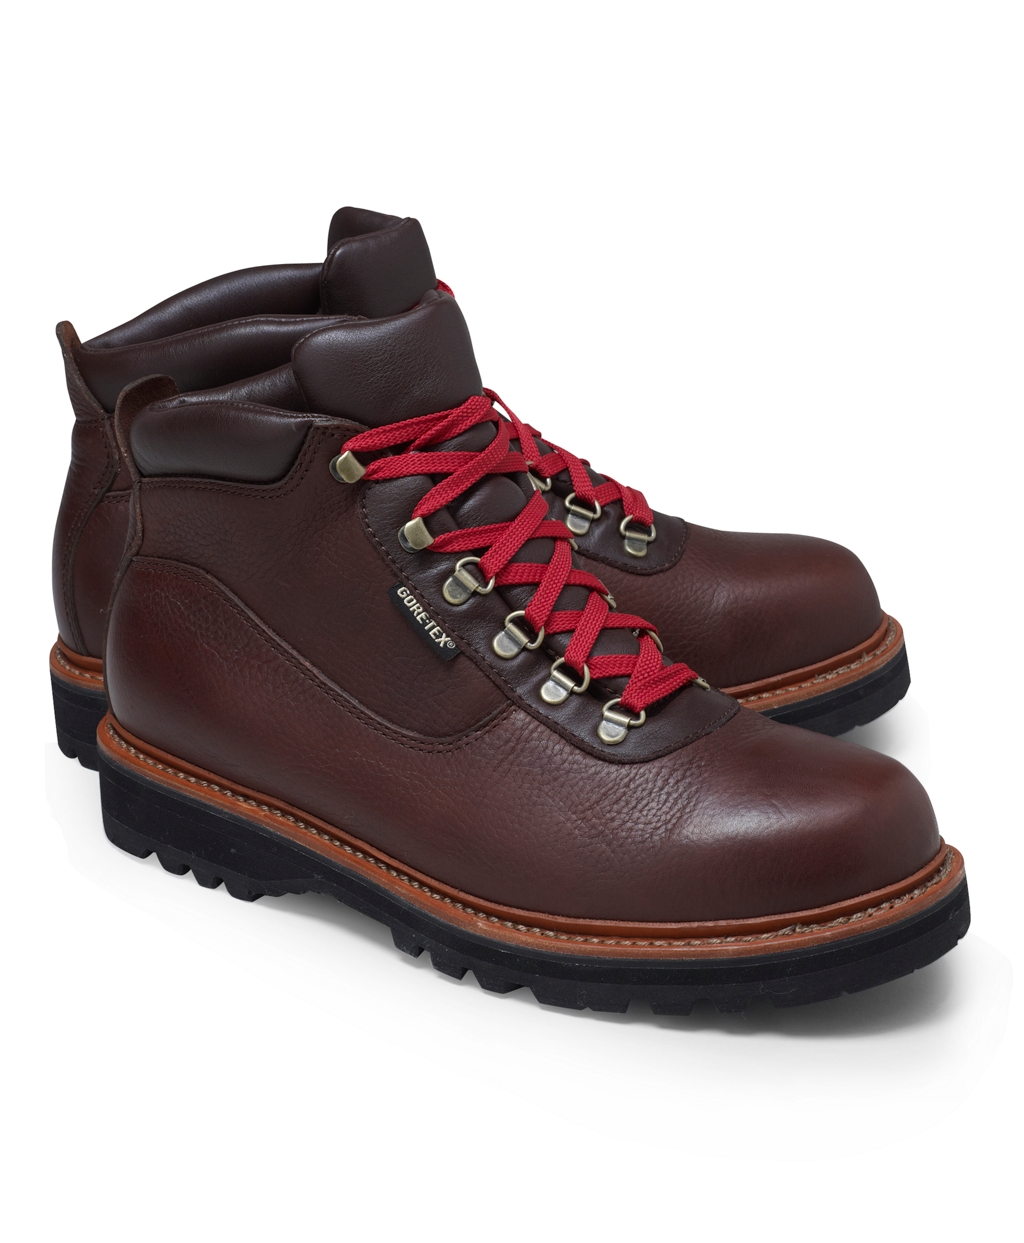 Brooks Brothers Hiking Boots In Brown For Men Lyst